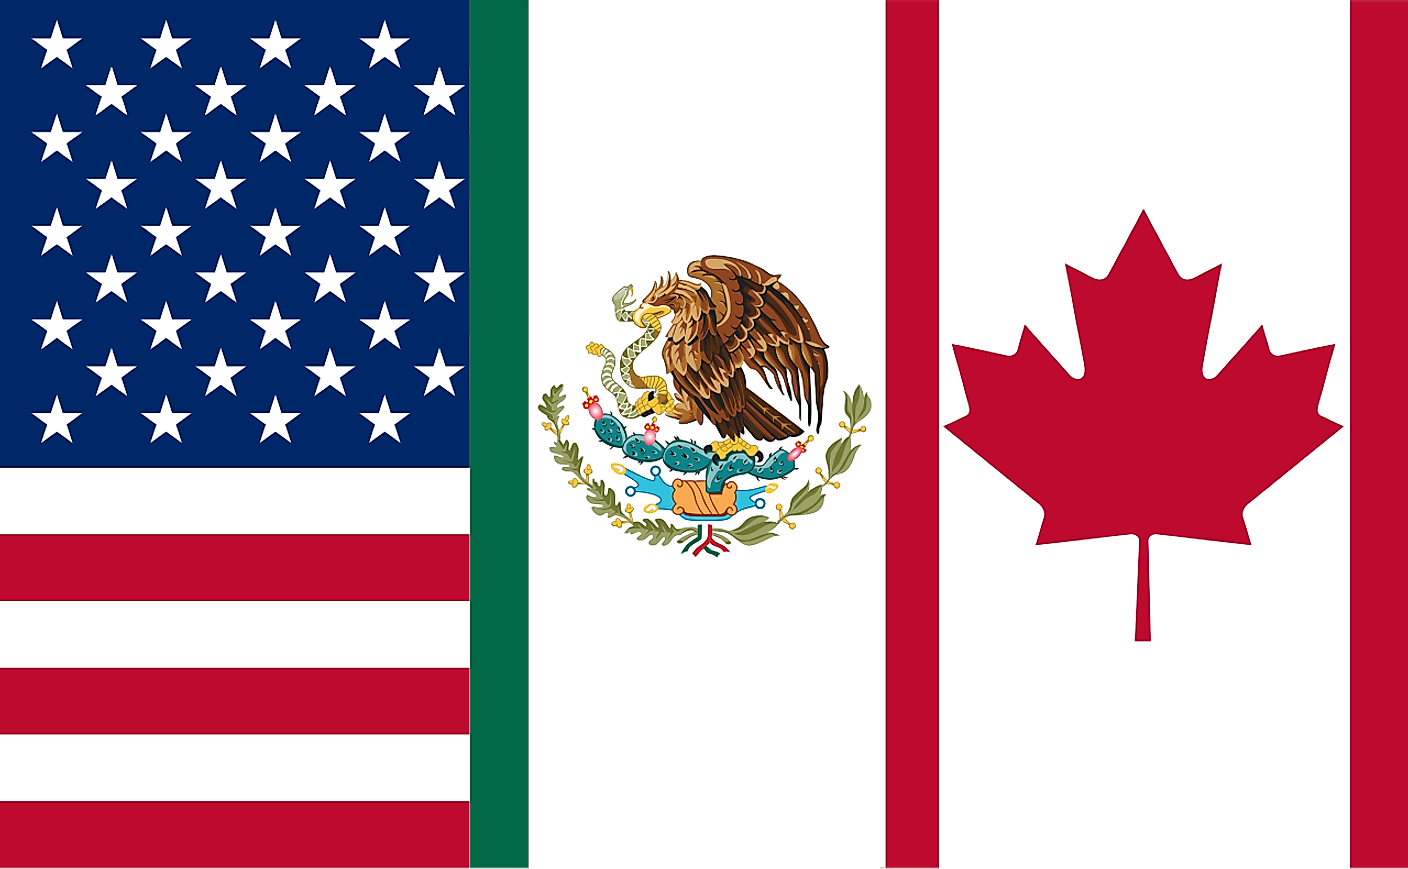 Flag of the North American Free Trade Agreement (NAFTA)